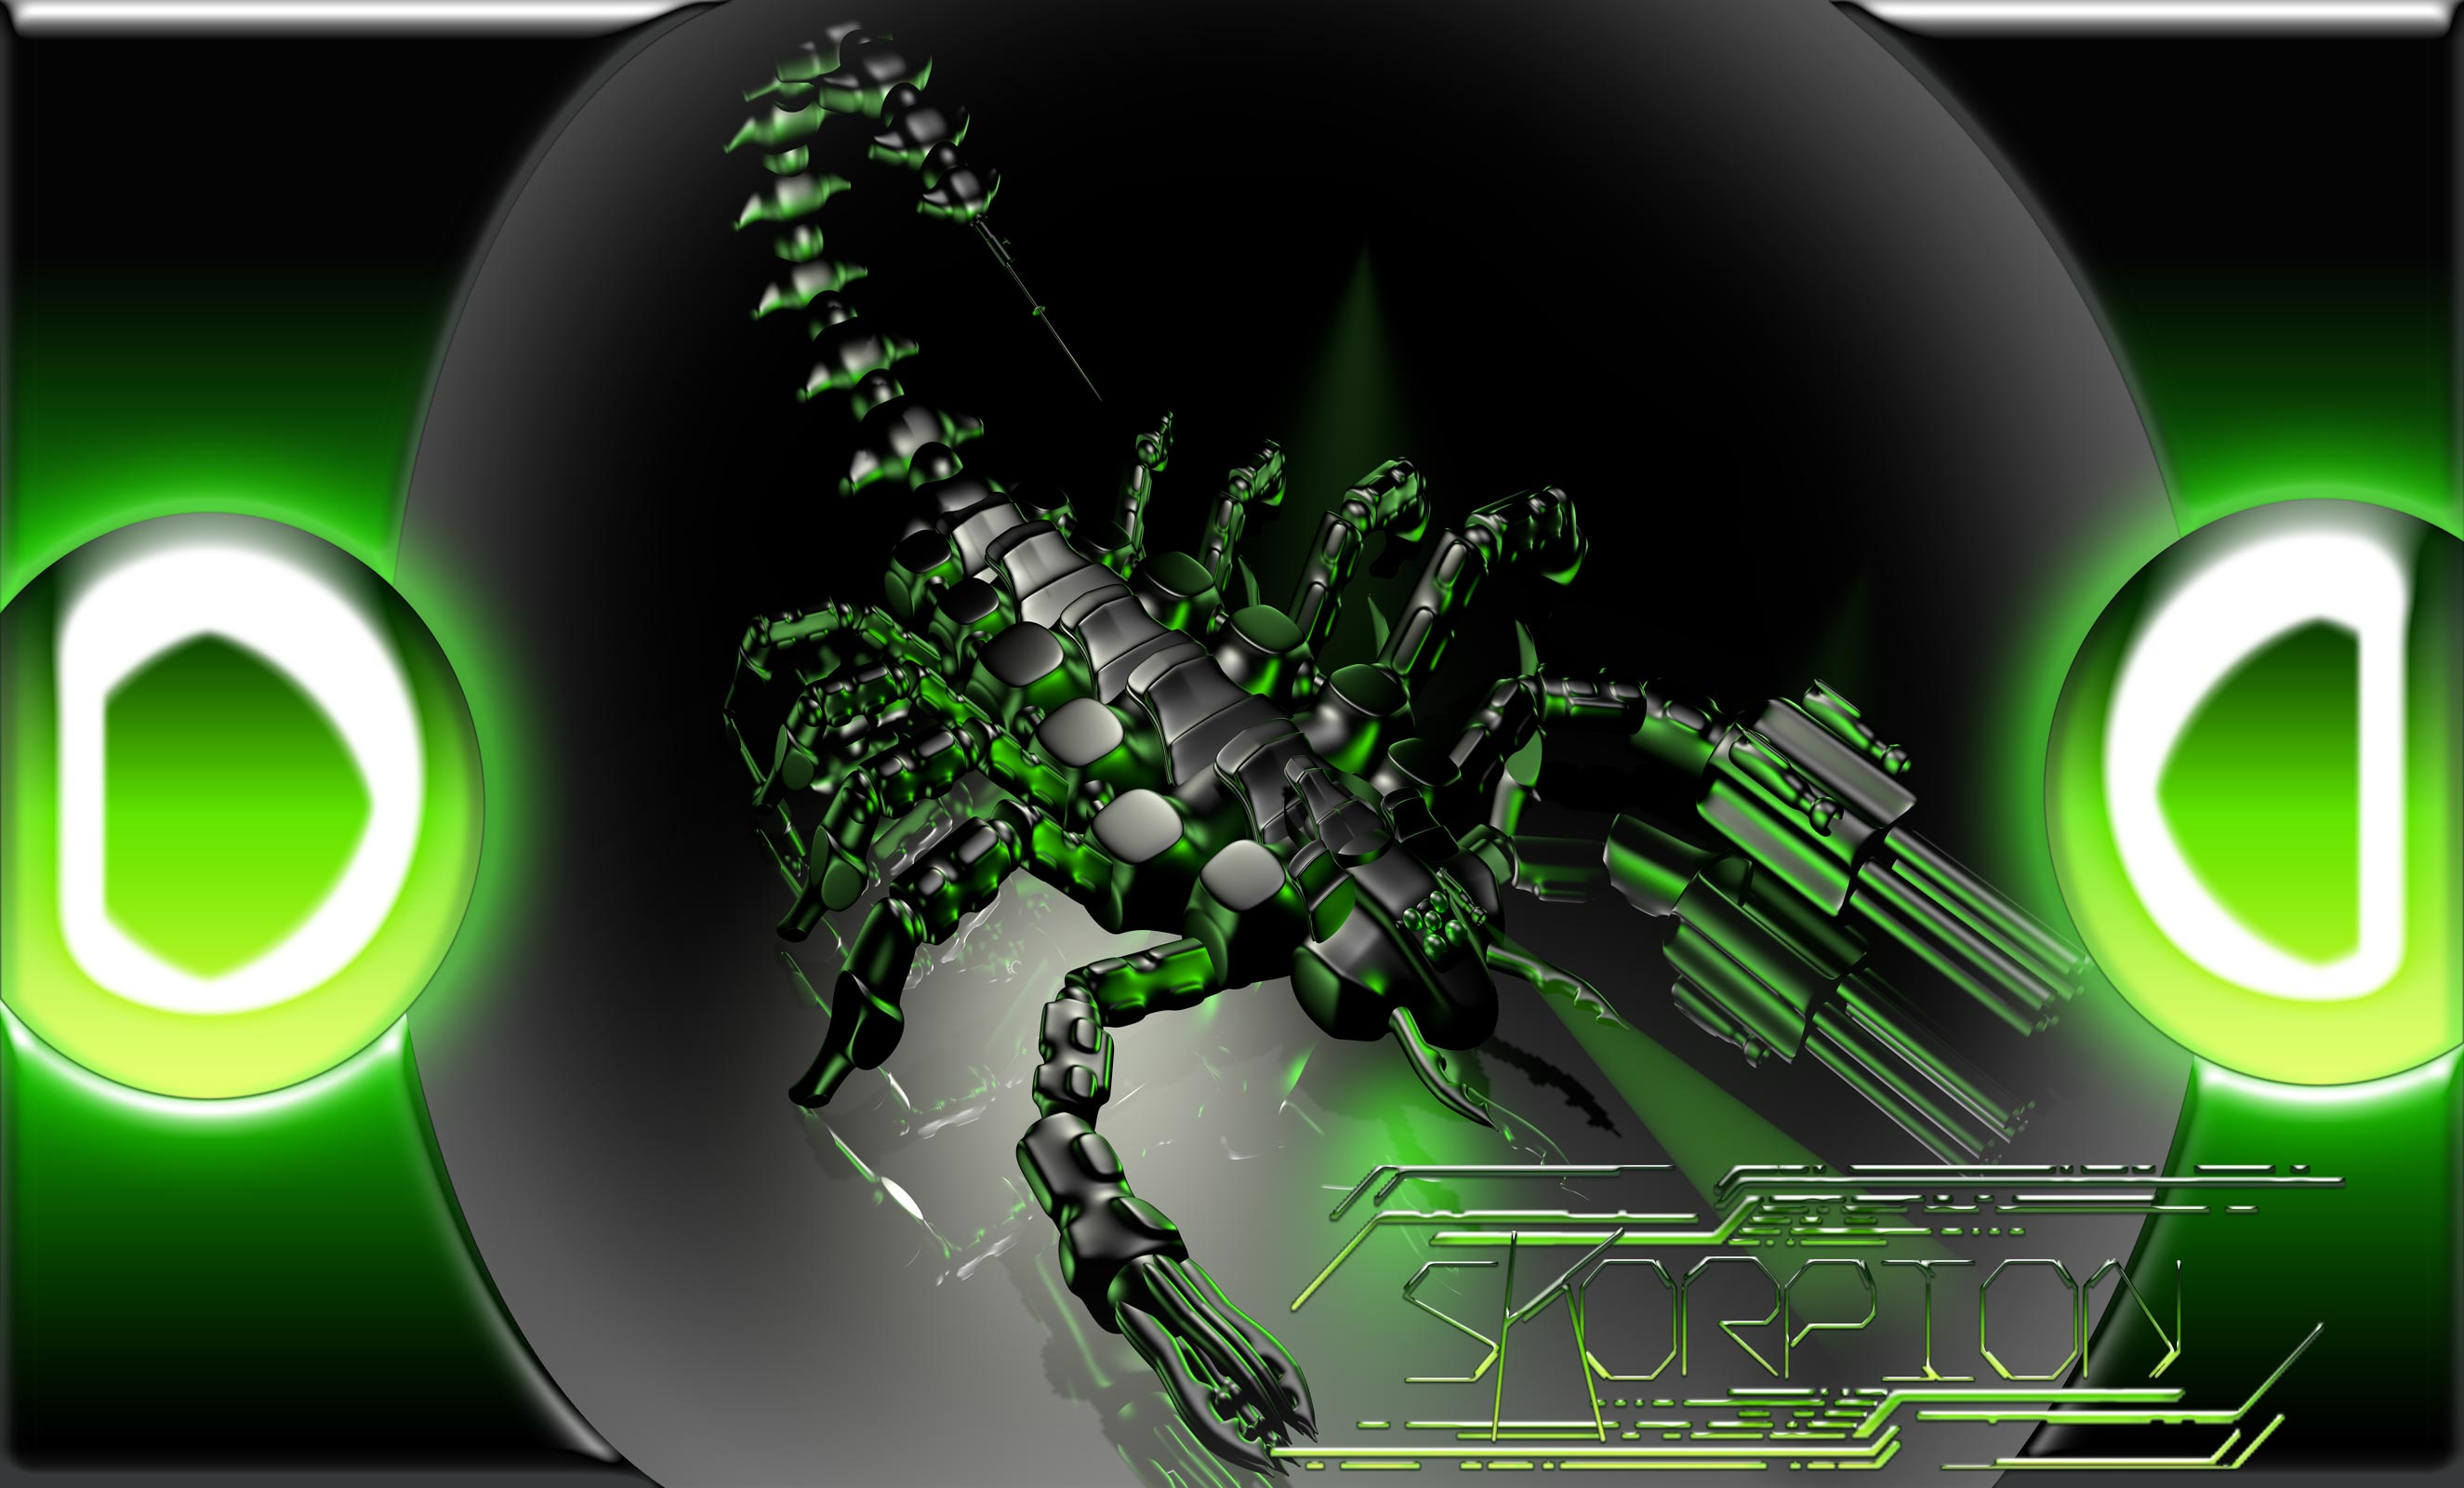 3d Wallpaper Theme For Android Cyber Scorpion Full Hd Wallpaper And Background